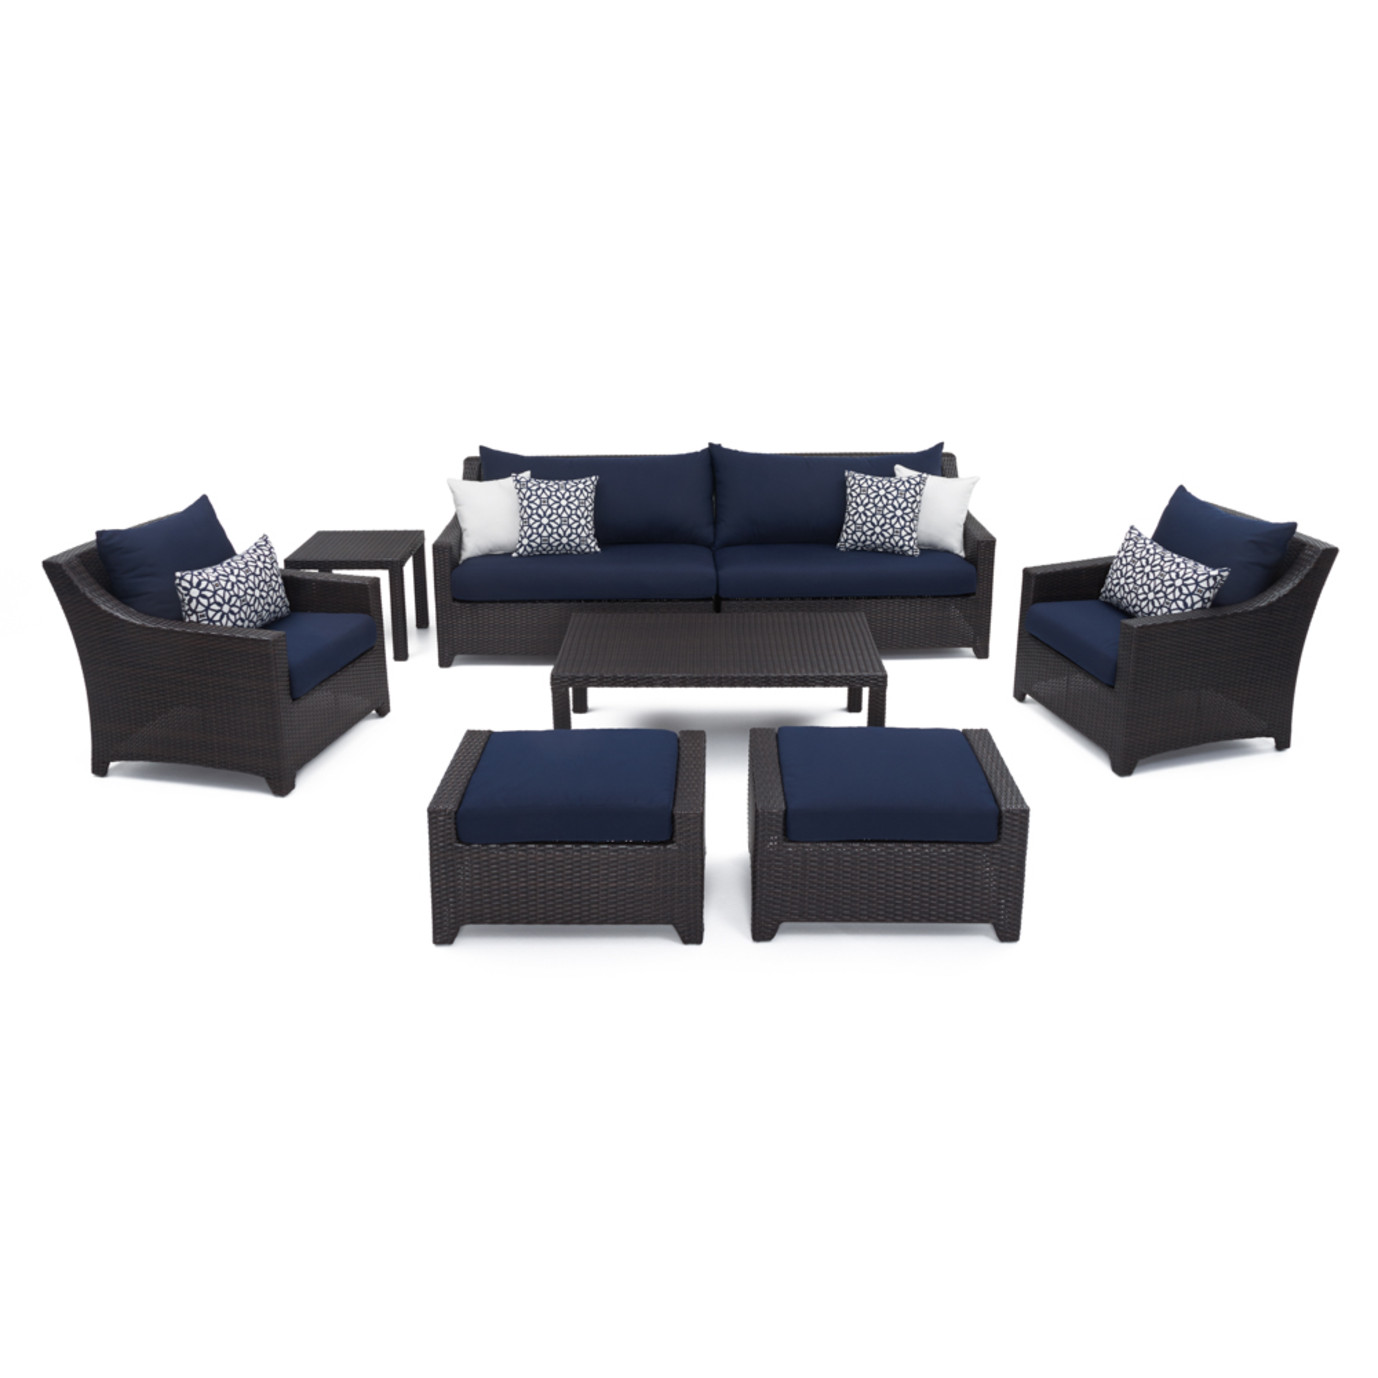 deco 8pc sofa set with furniture covers navy blue rst brands